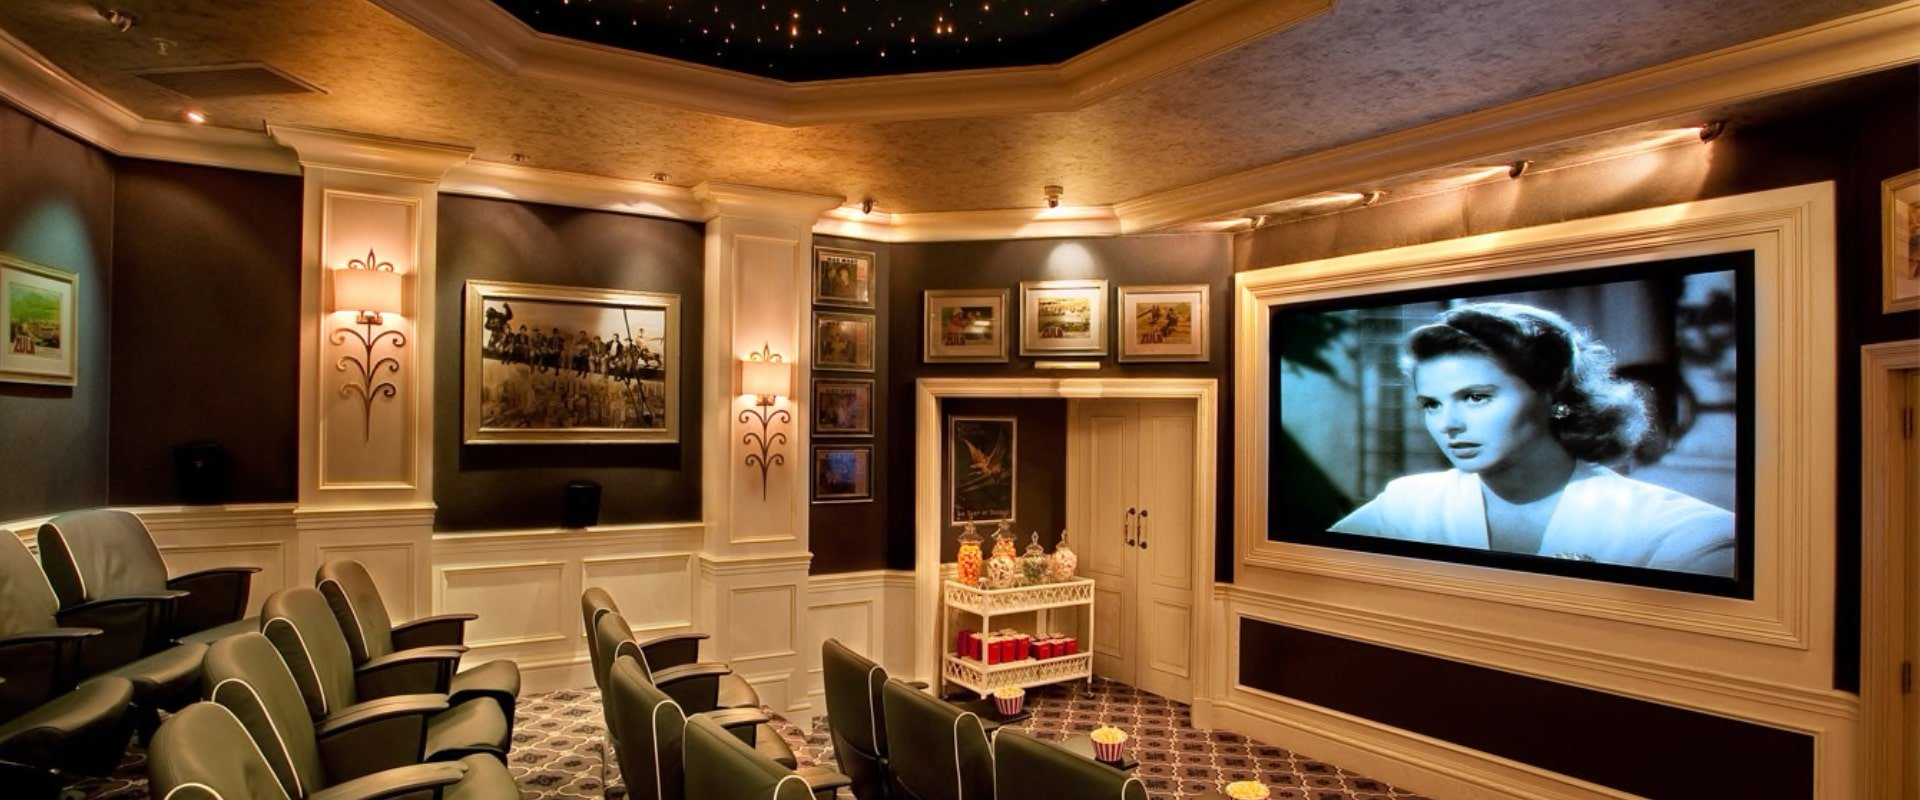 Movie in a 24-seater cinema